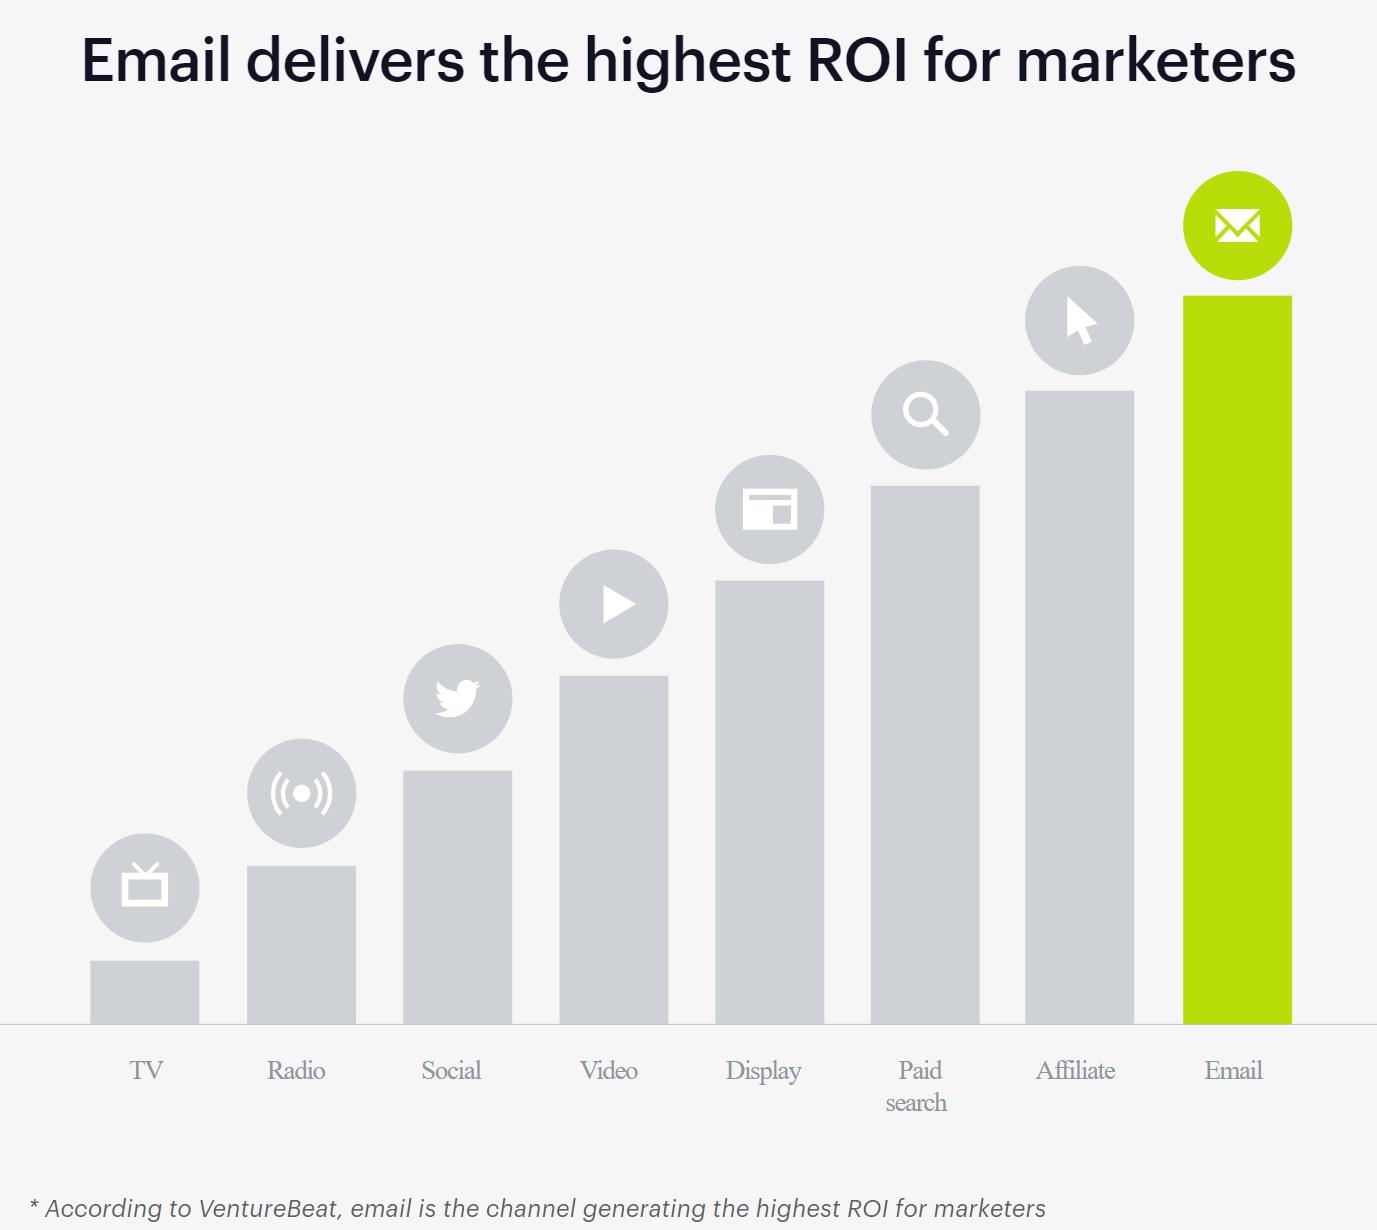 Email marketing delivers the highest ROI